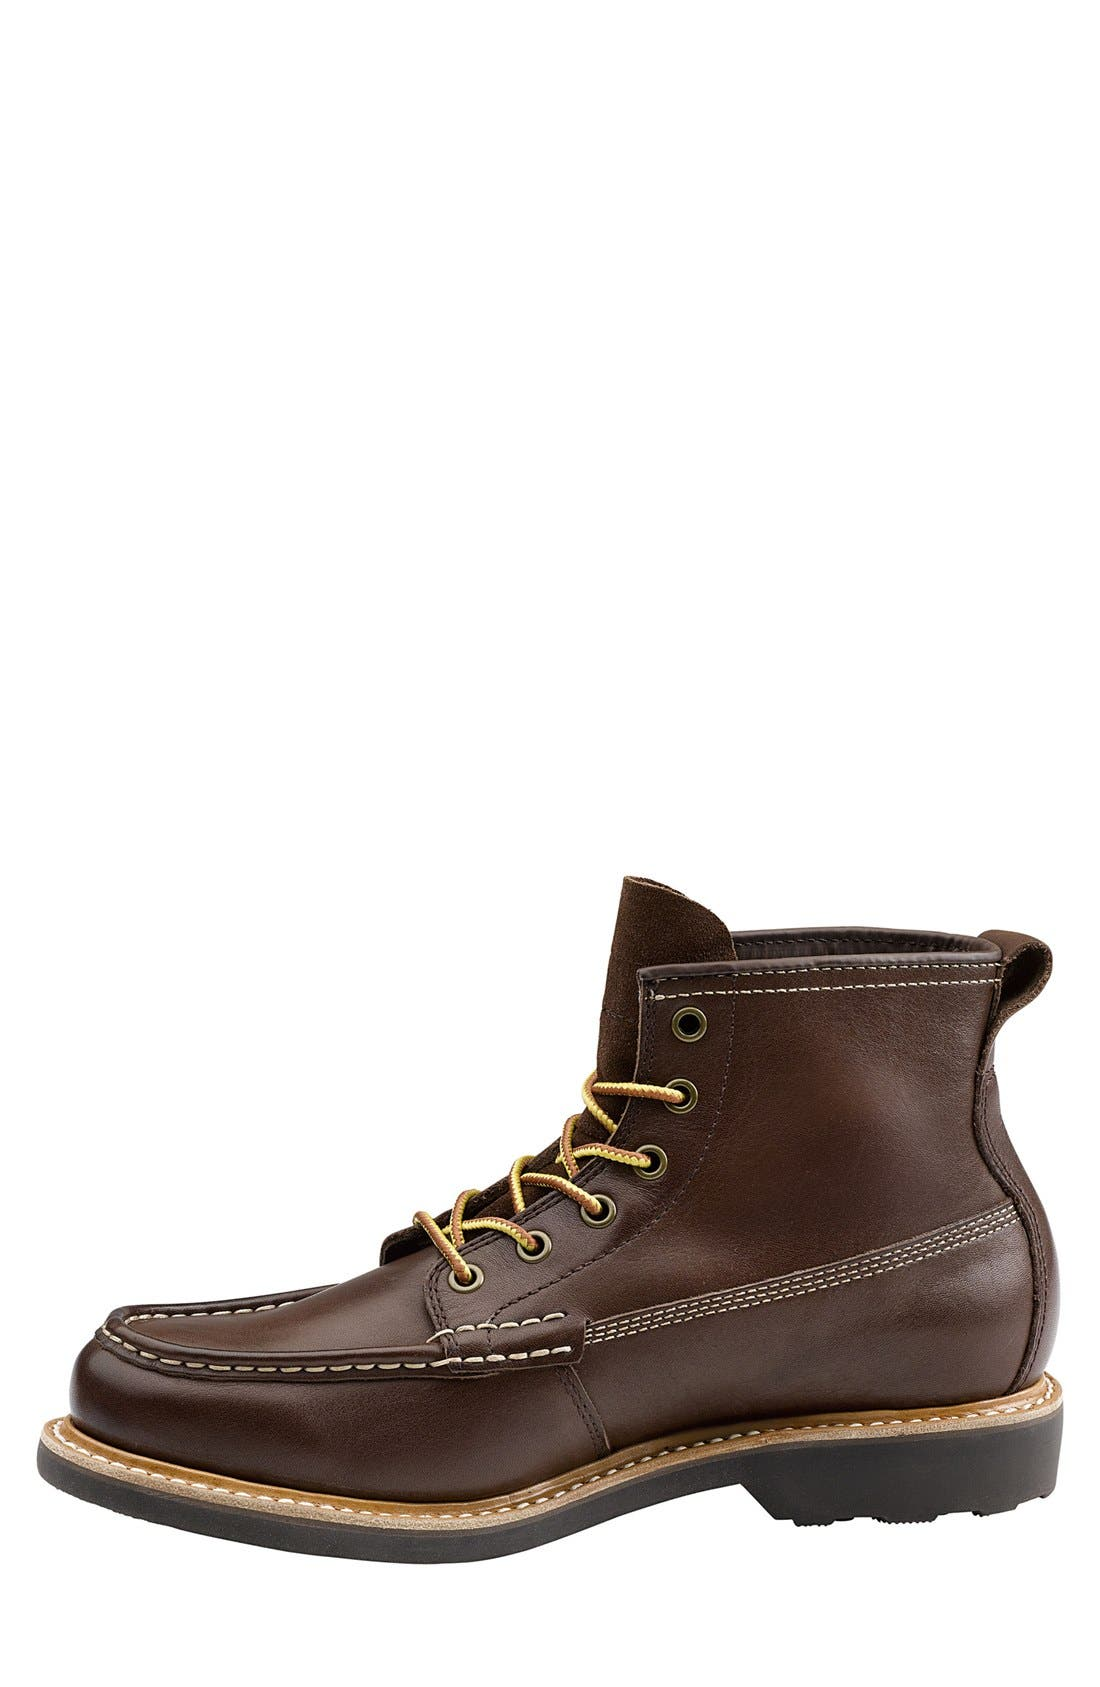 'Ashby' Moc Toe Boot,                             Alternate thumbnail 2, color,                             Mahogany